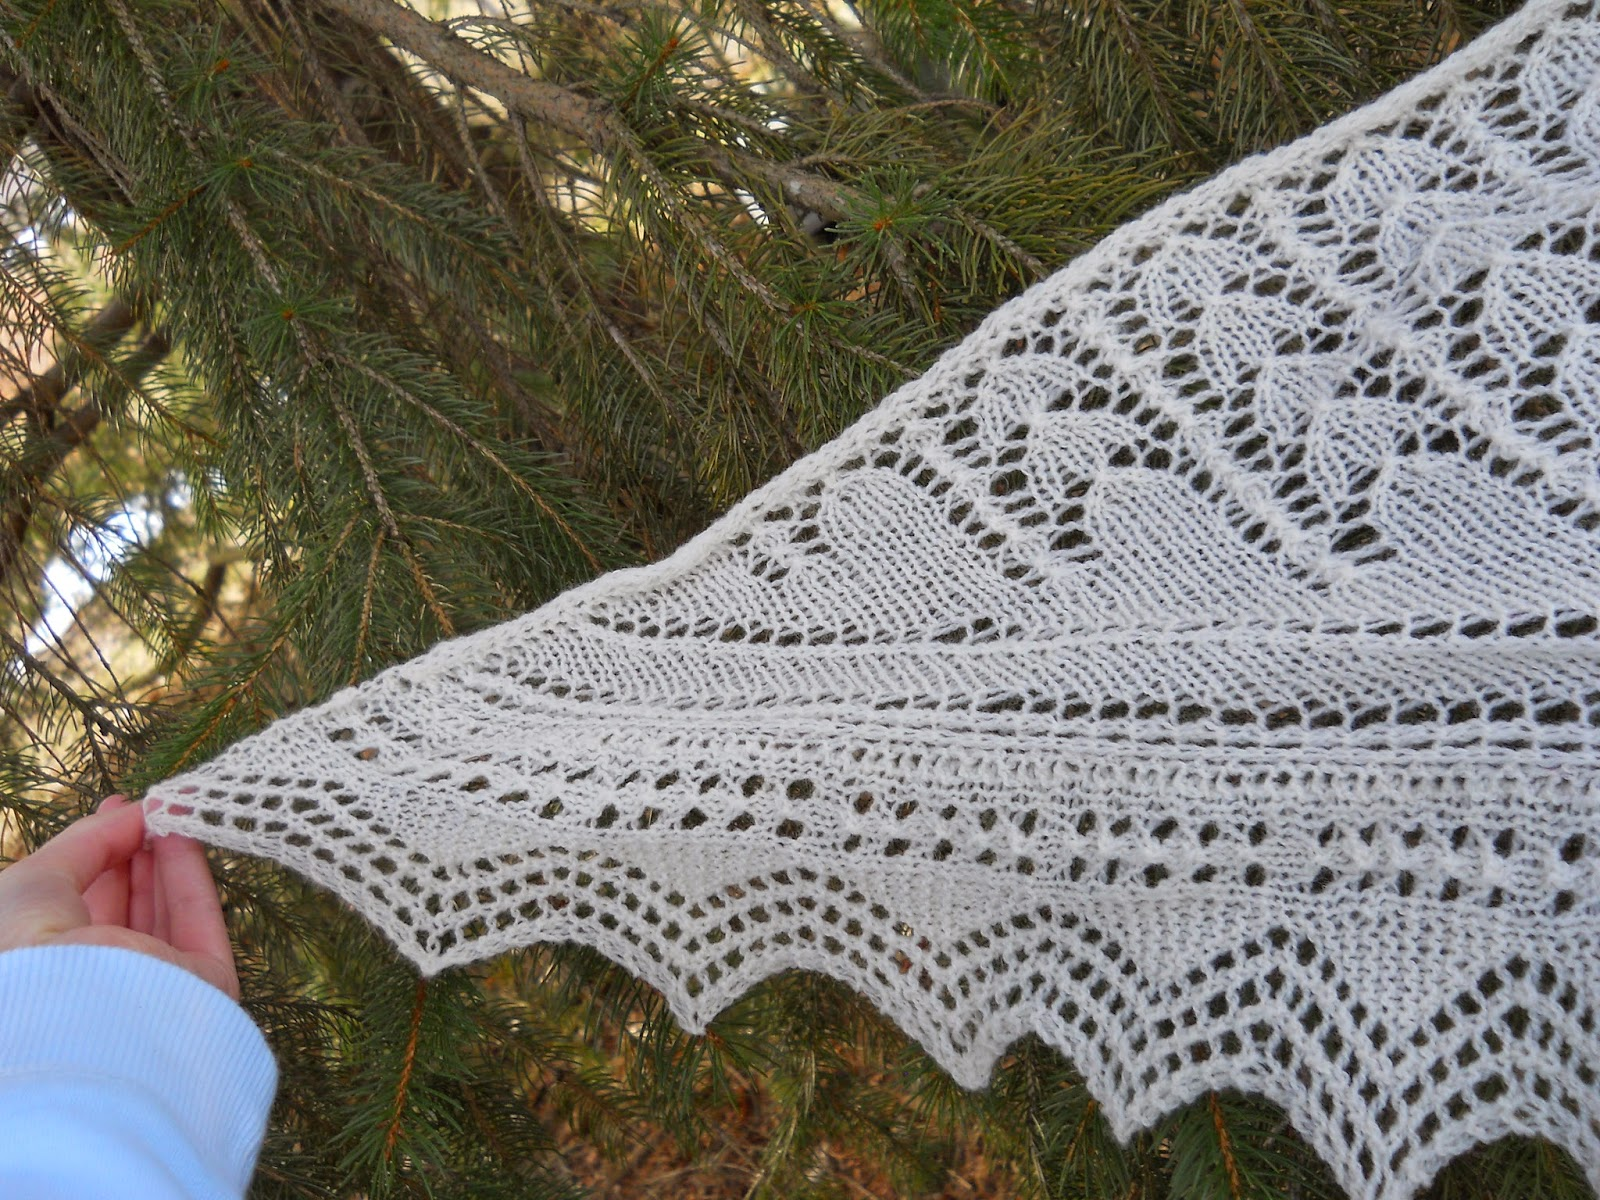 http://www.ravelry.com/projects/gizmo098/snowdrop-shawl